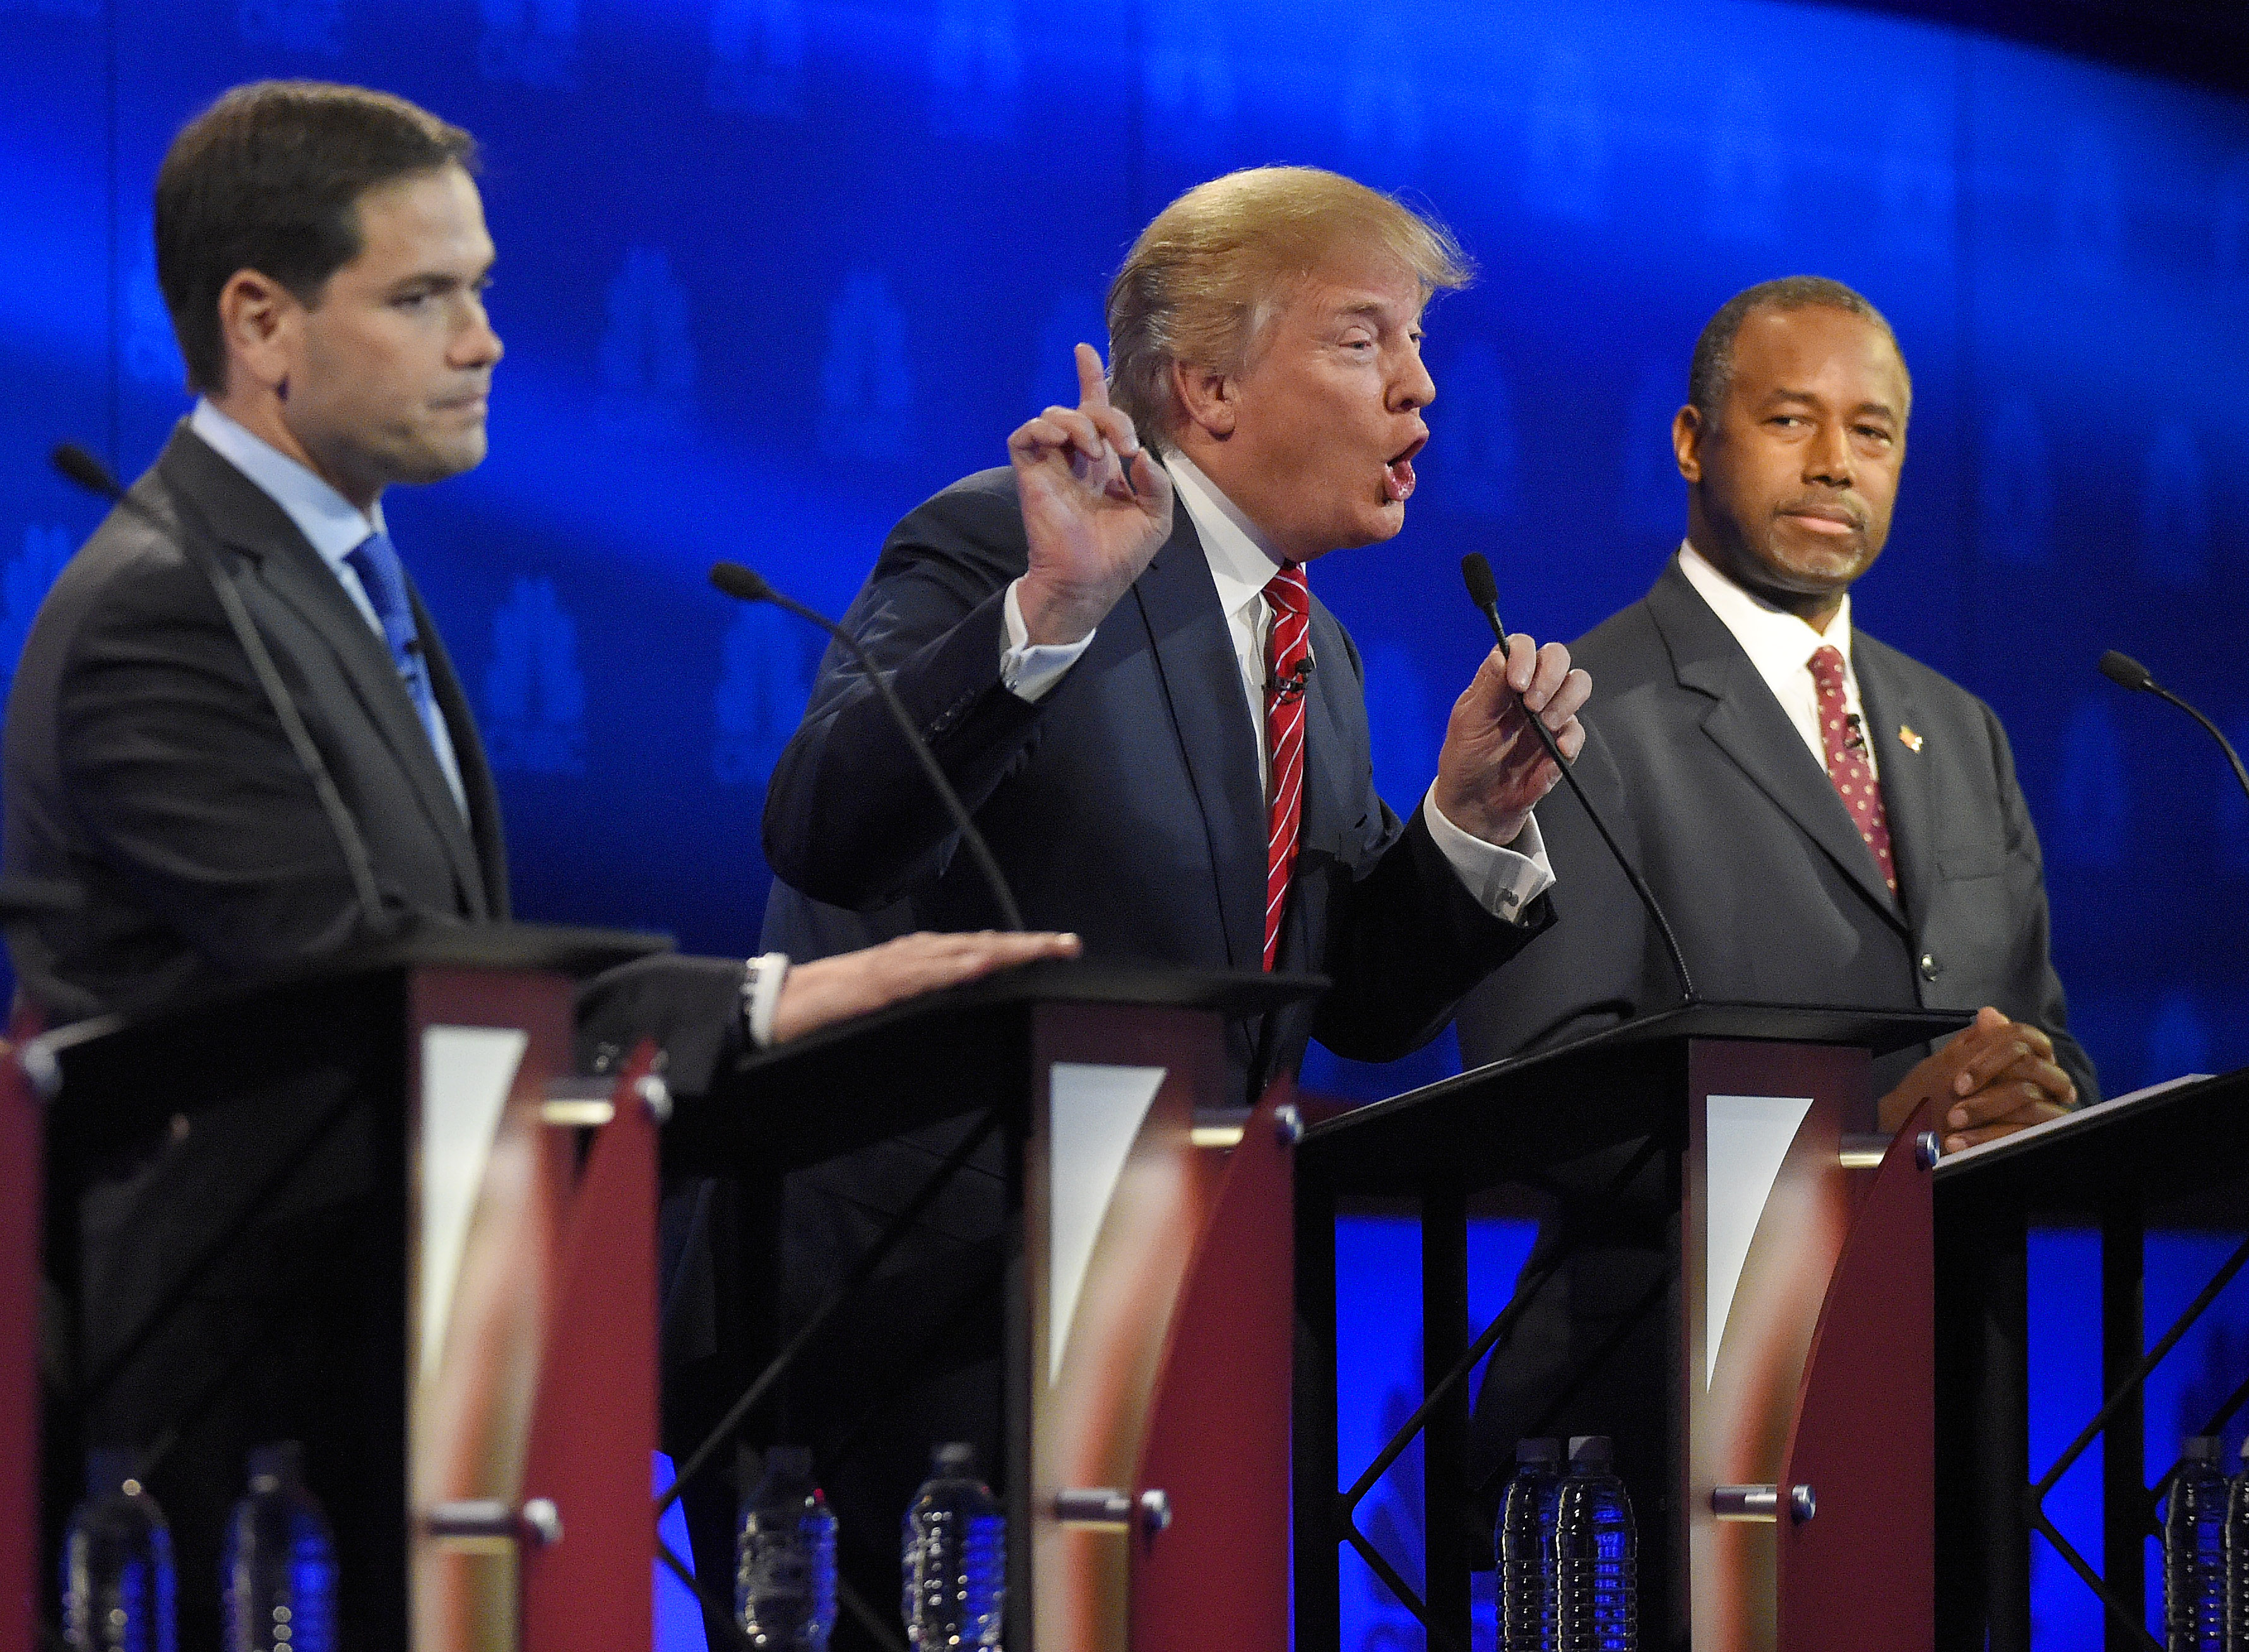 Republican presidential candidates face off in third debate (Photos)